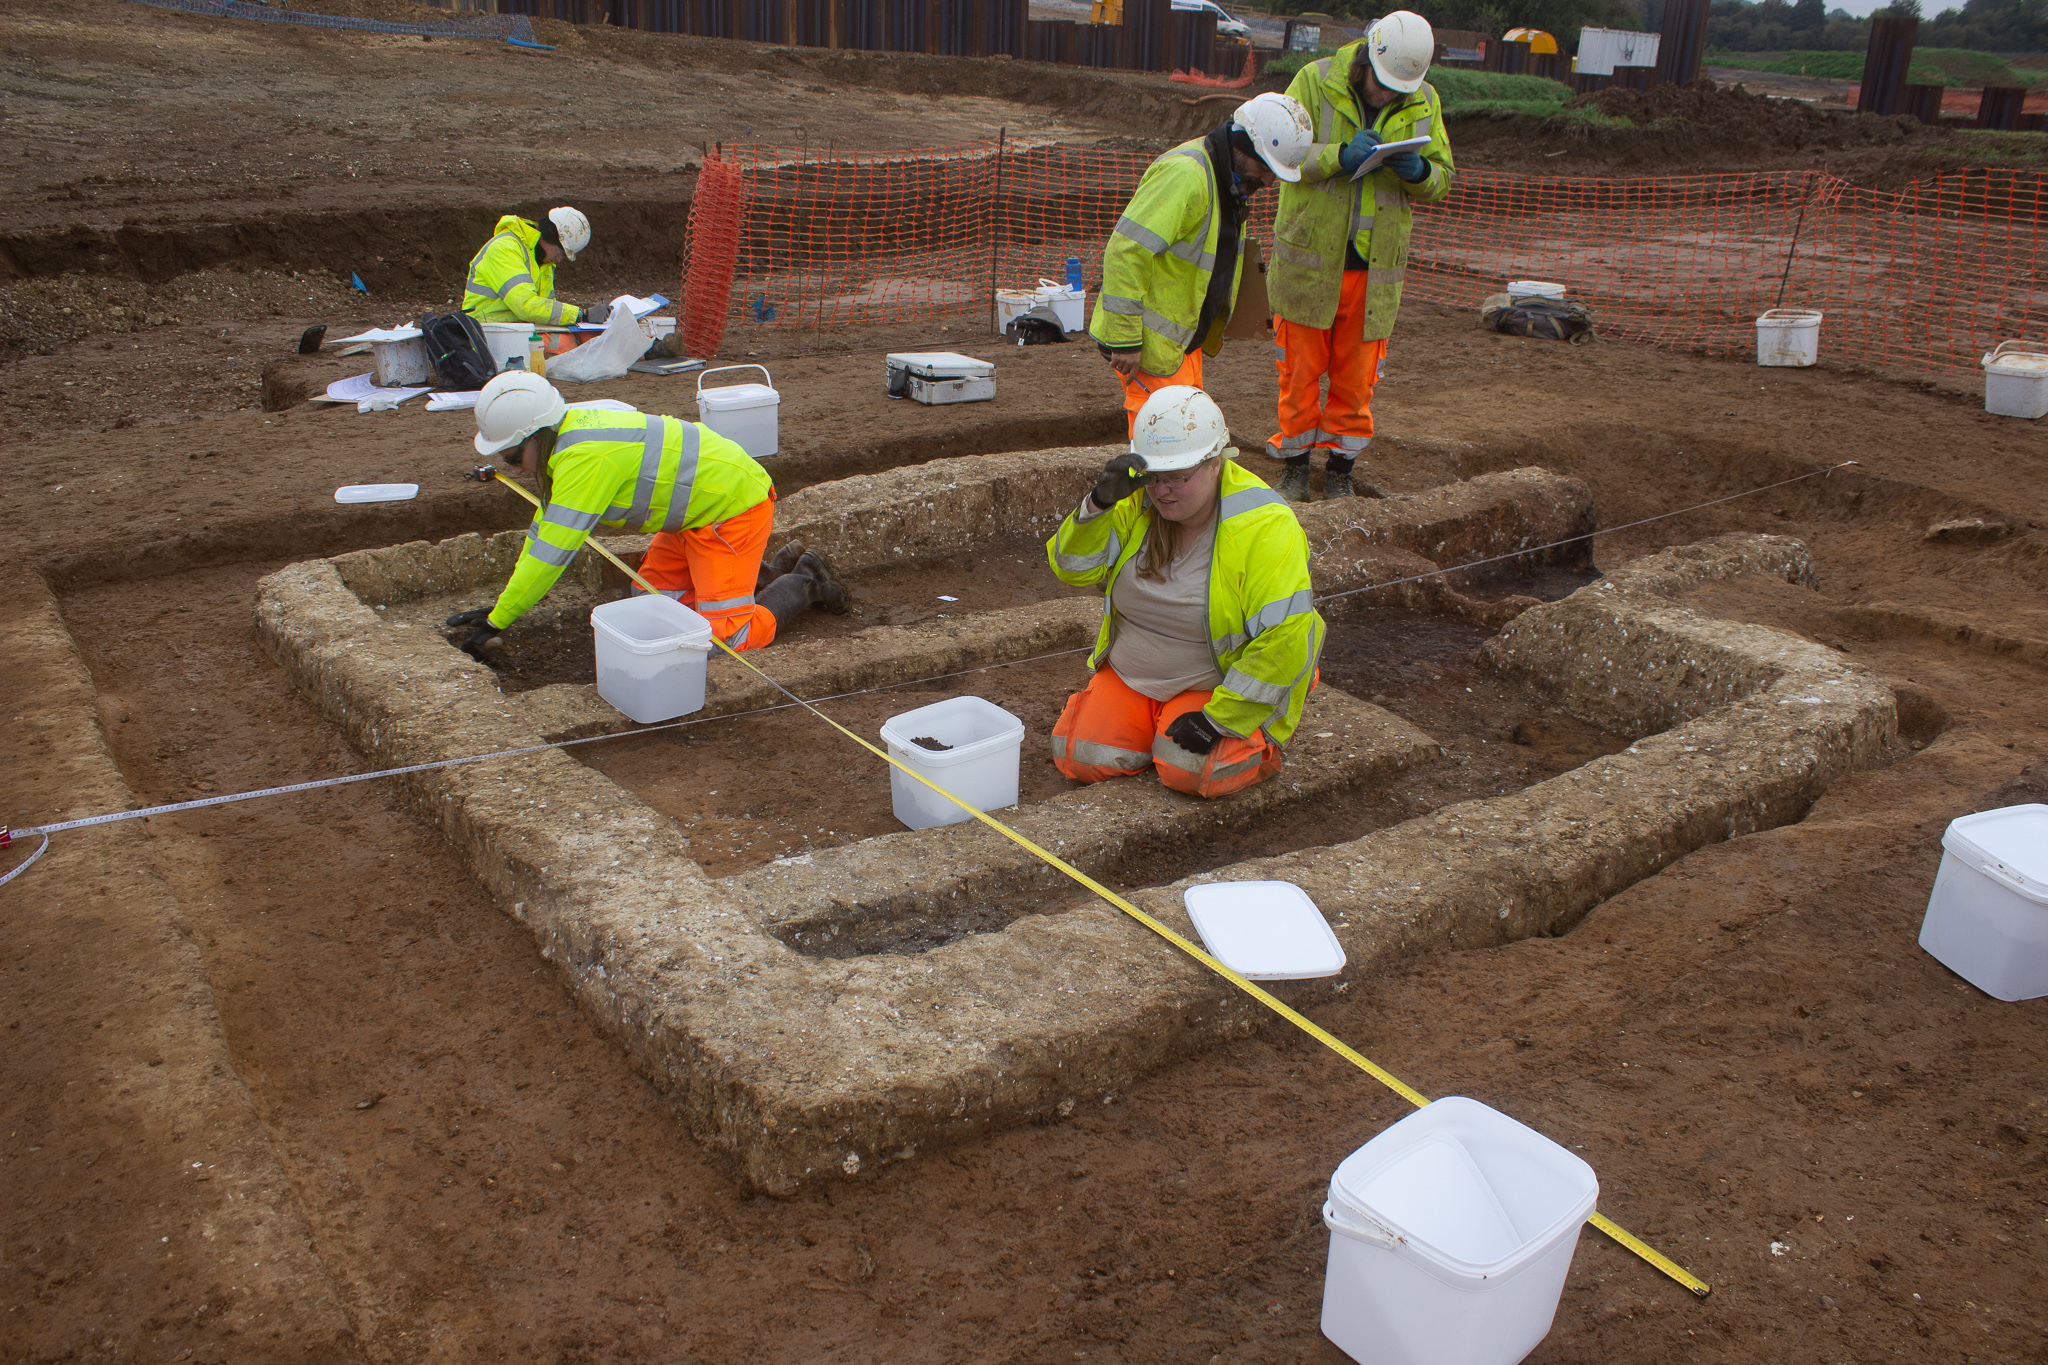 Fascinating archaeological finds along new A120 route image